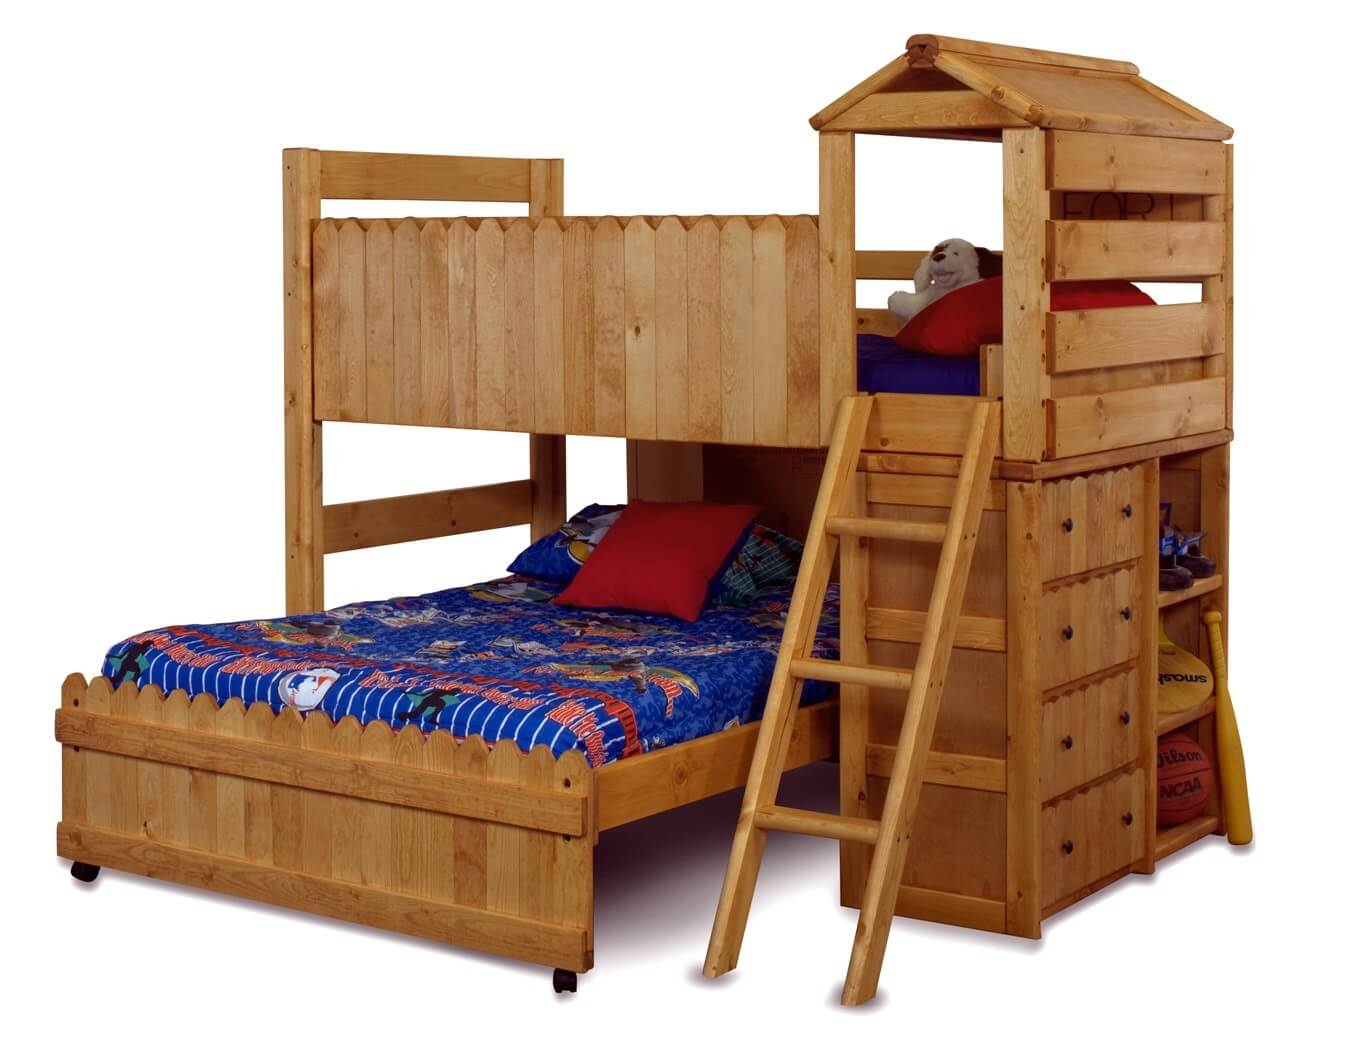 Twin Bed Frames For Boys 21 top wooden l-shaped bunk beds (with space-saving features